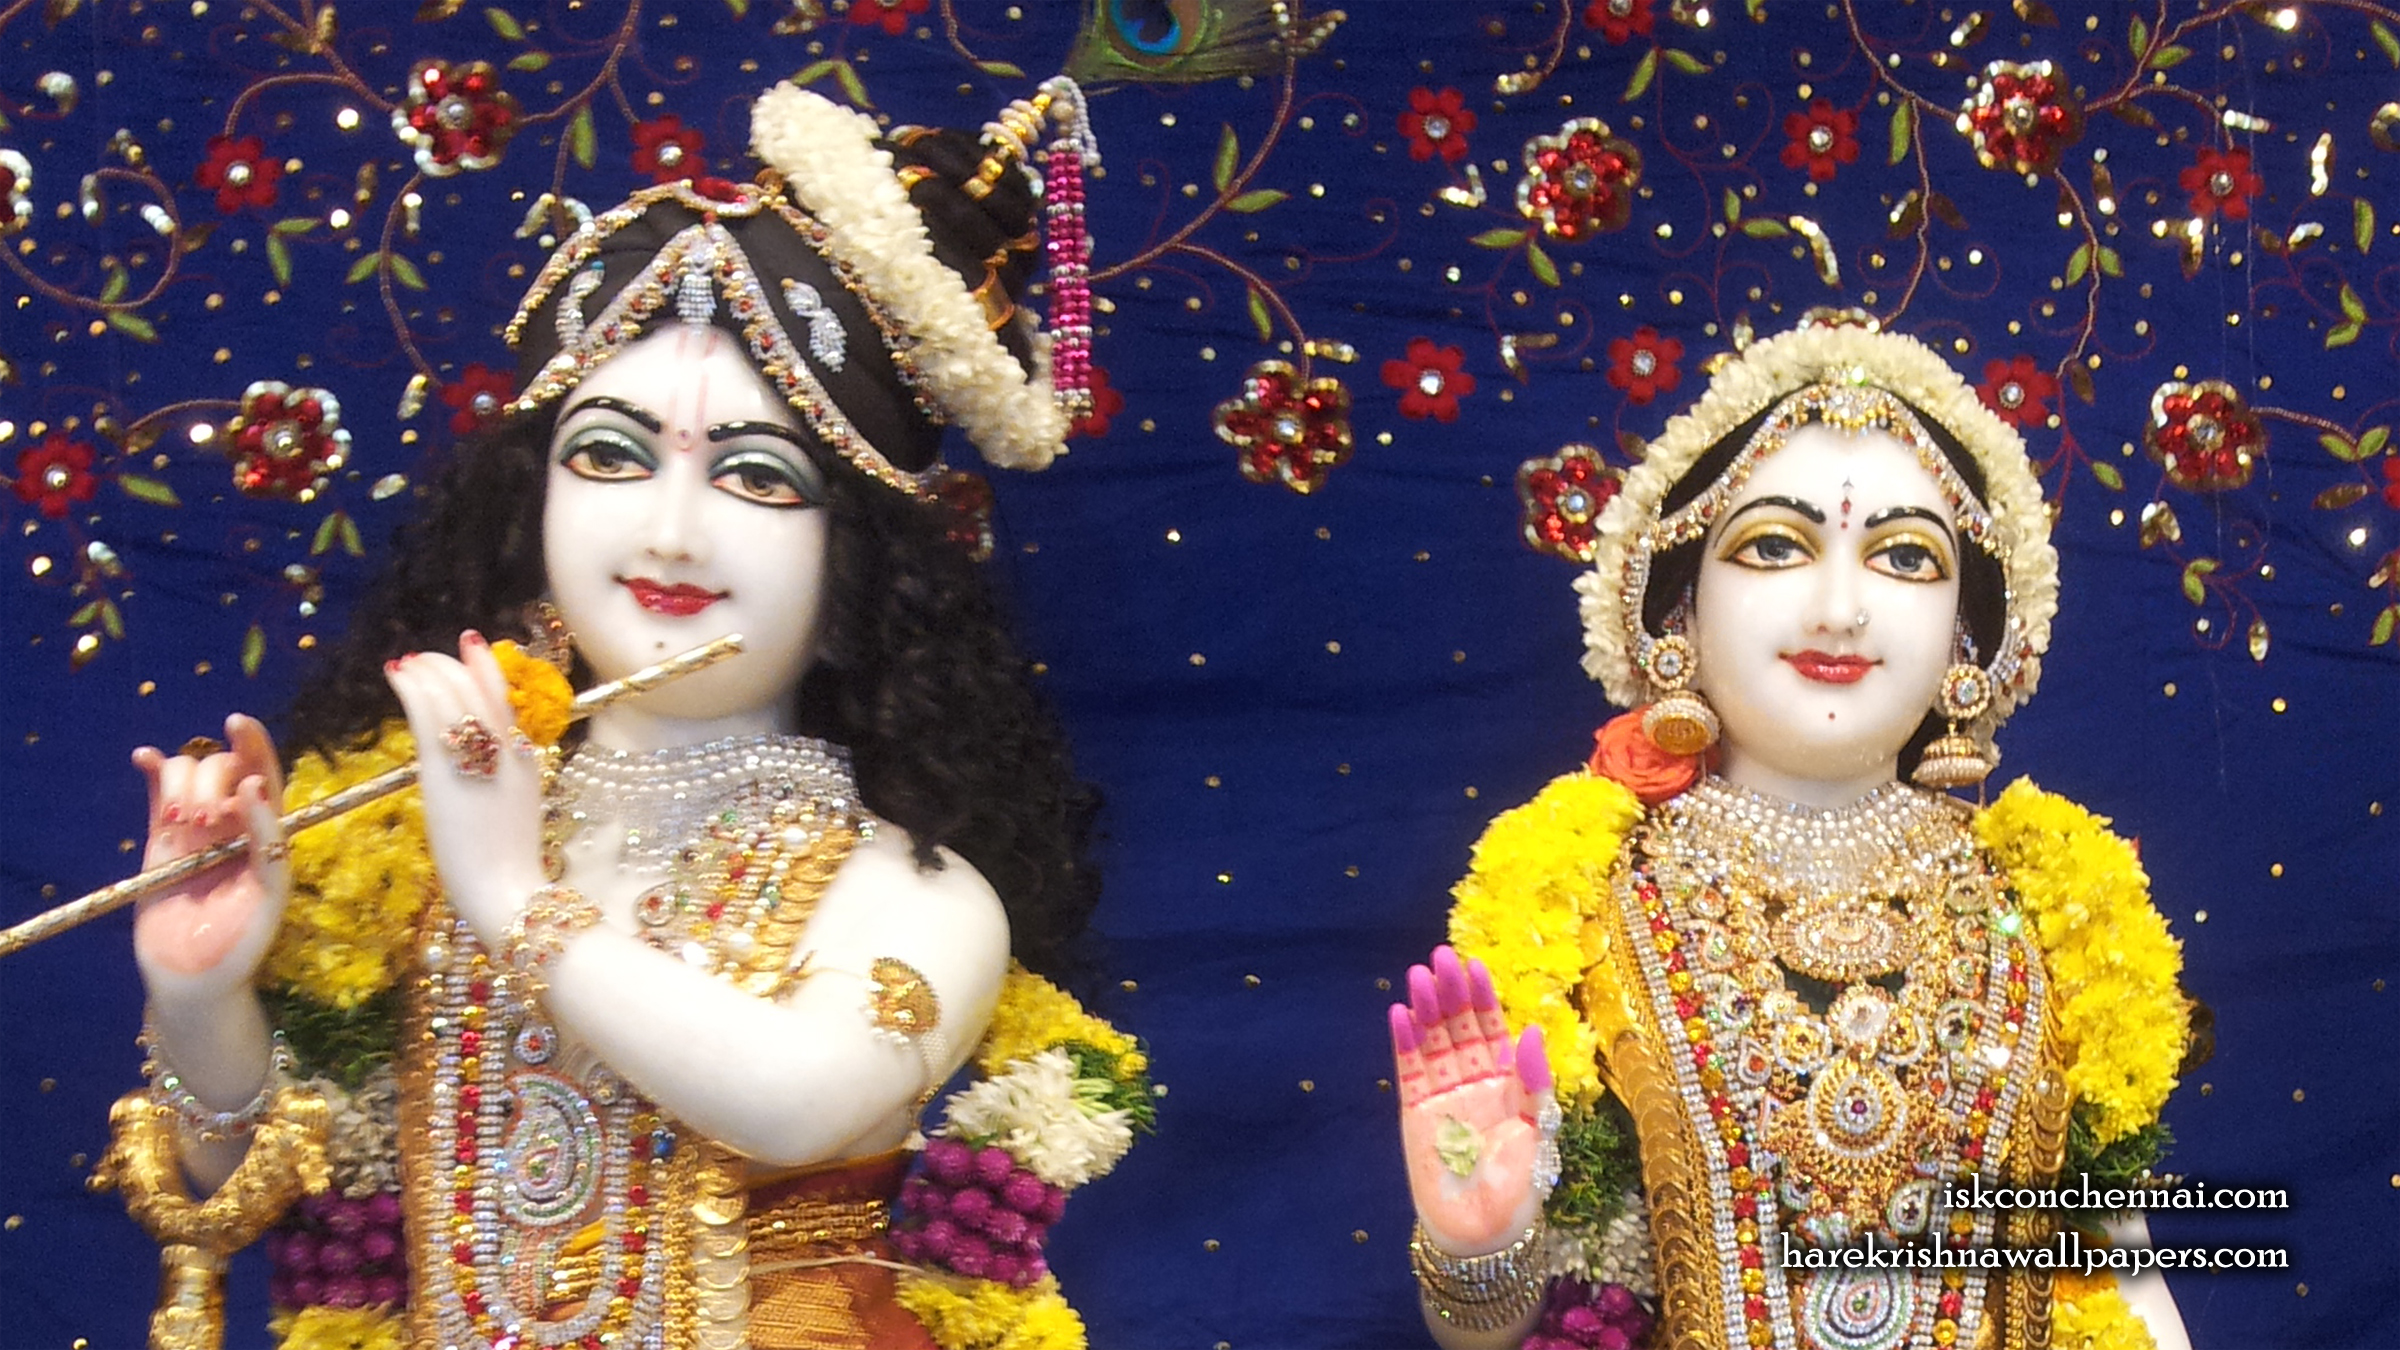 Sri Sri Radha Krishna Close up Wallpaper (002) Size 2400x1350 Download